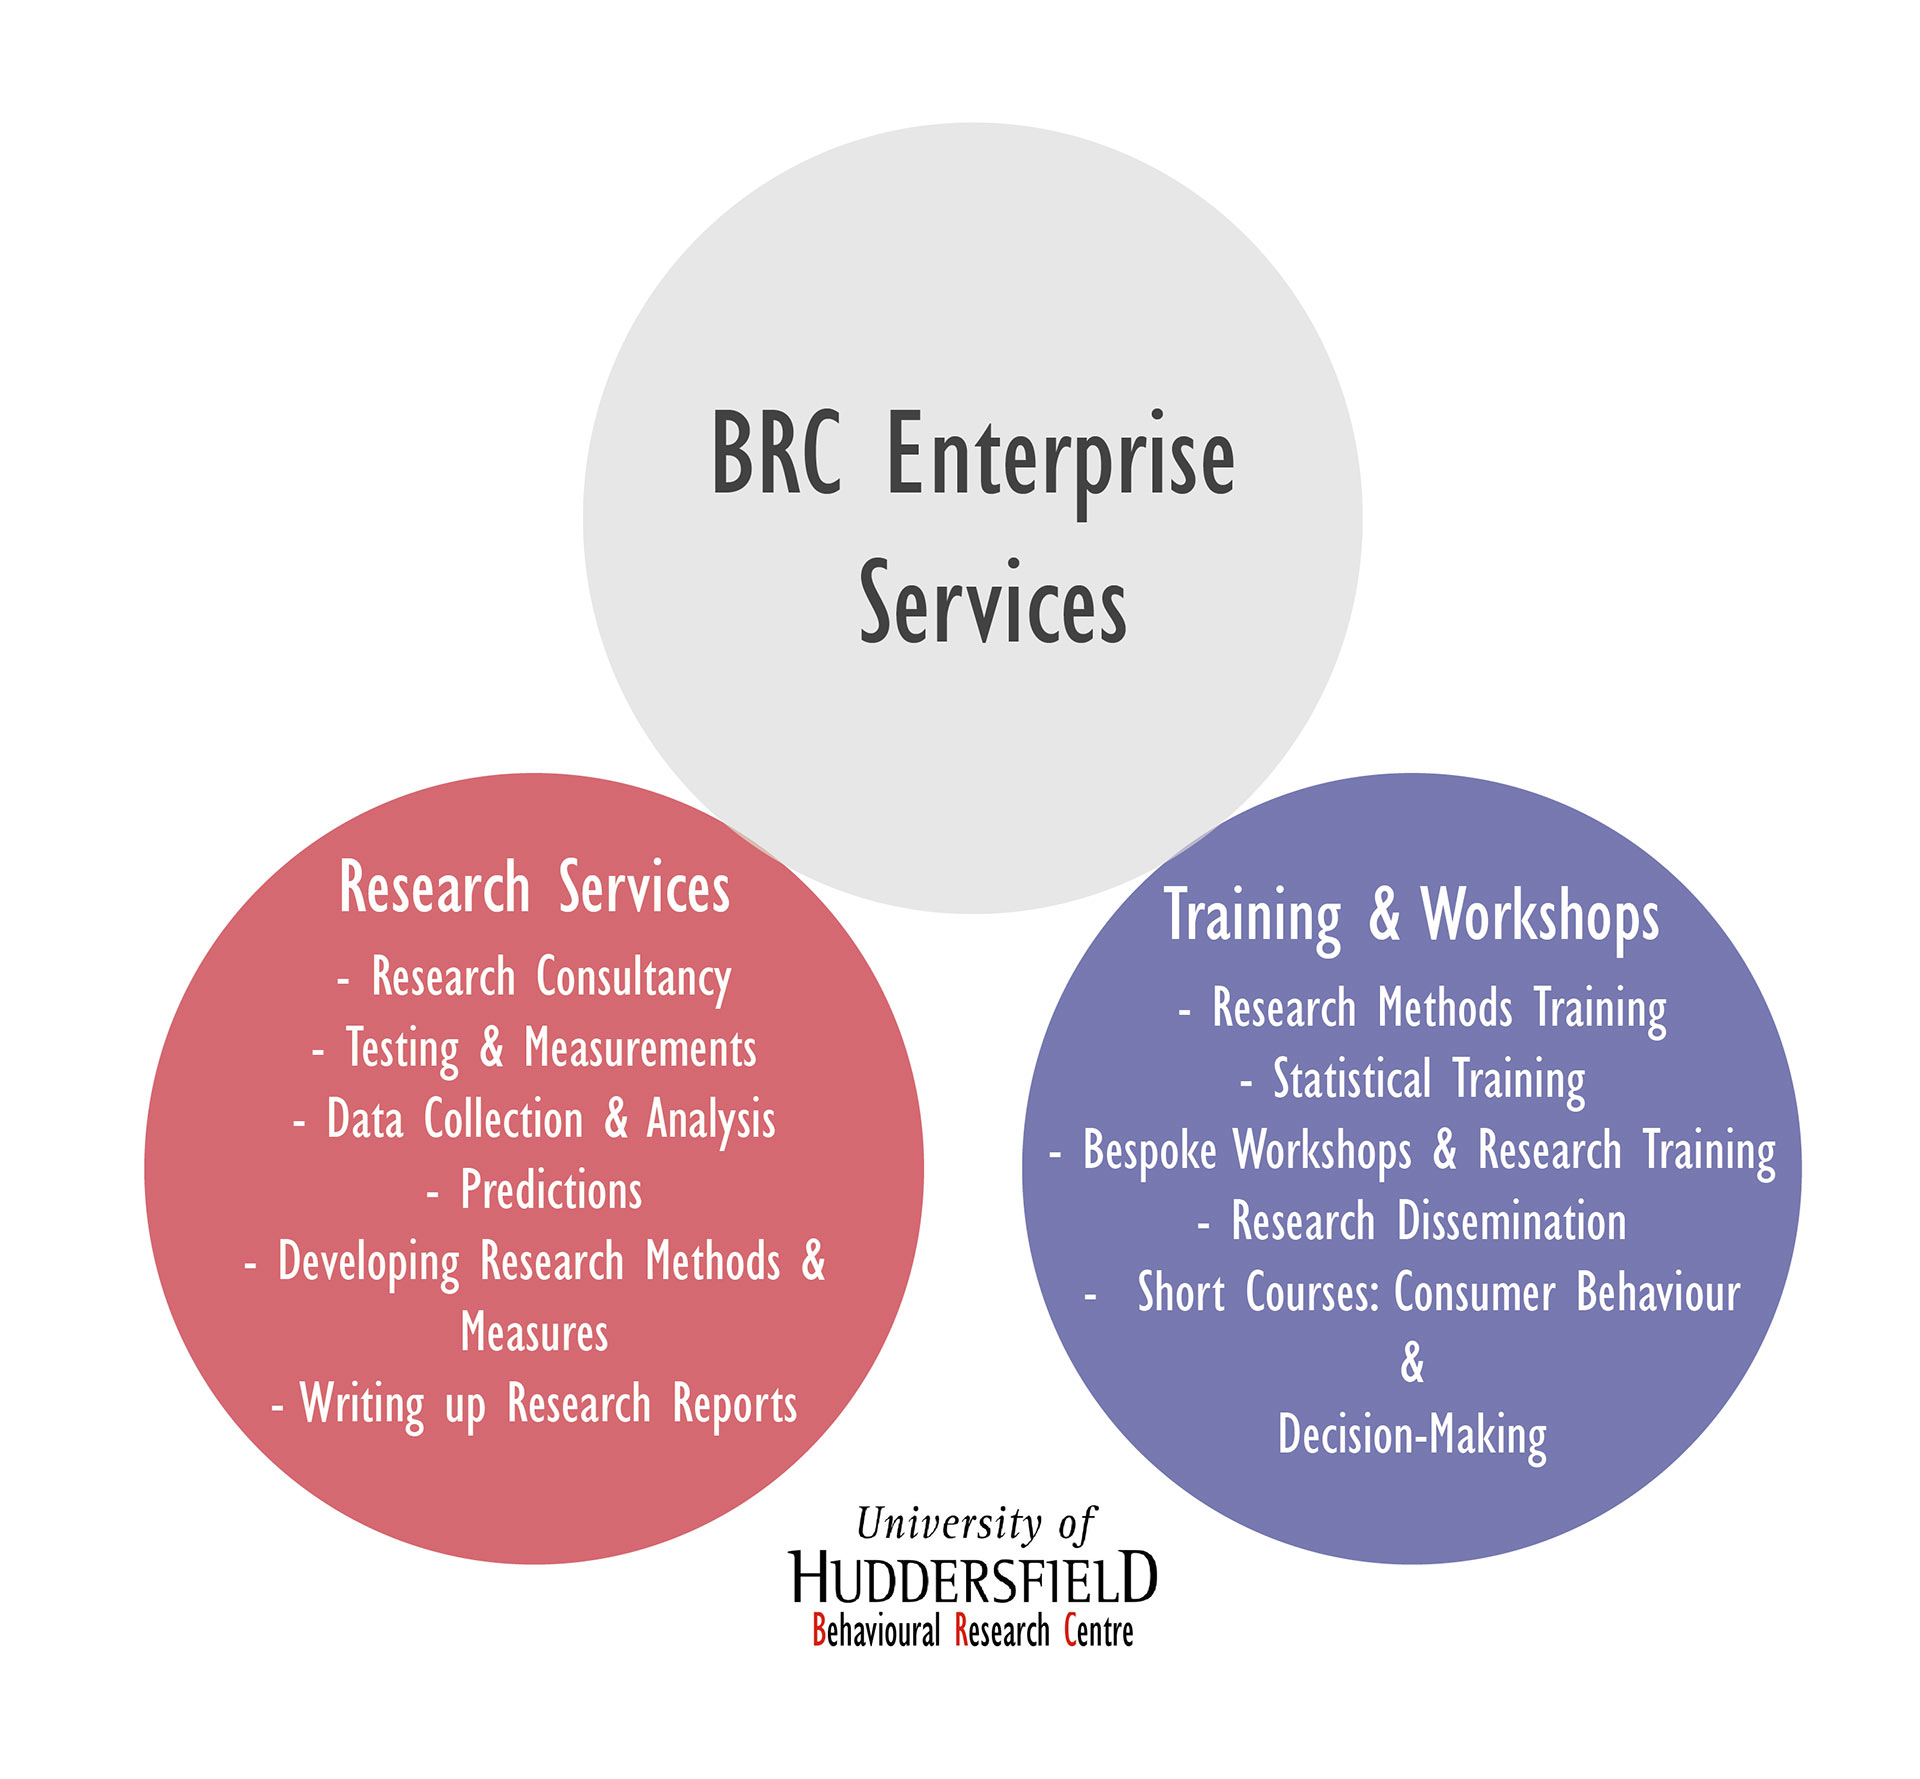 BRC Enterprise Services